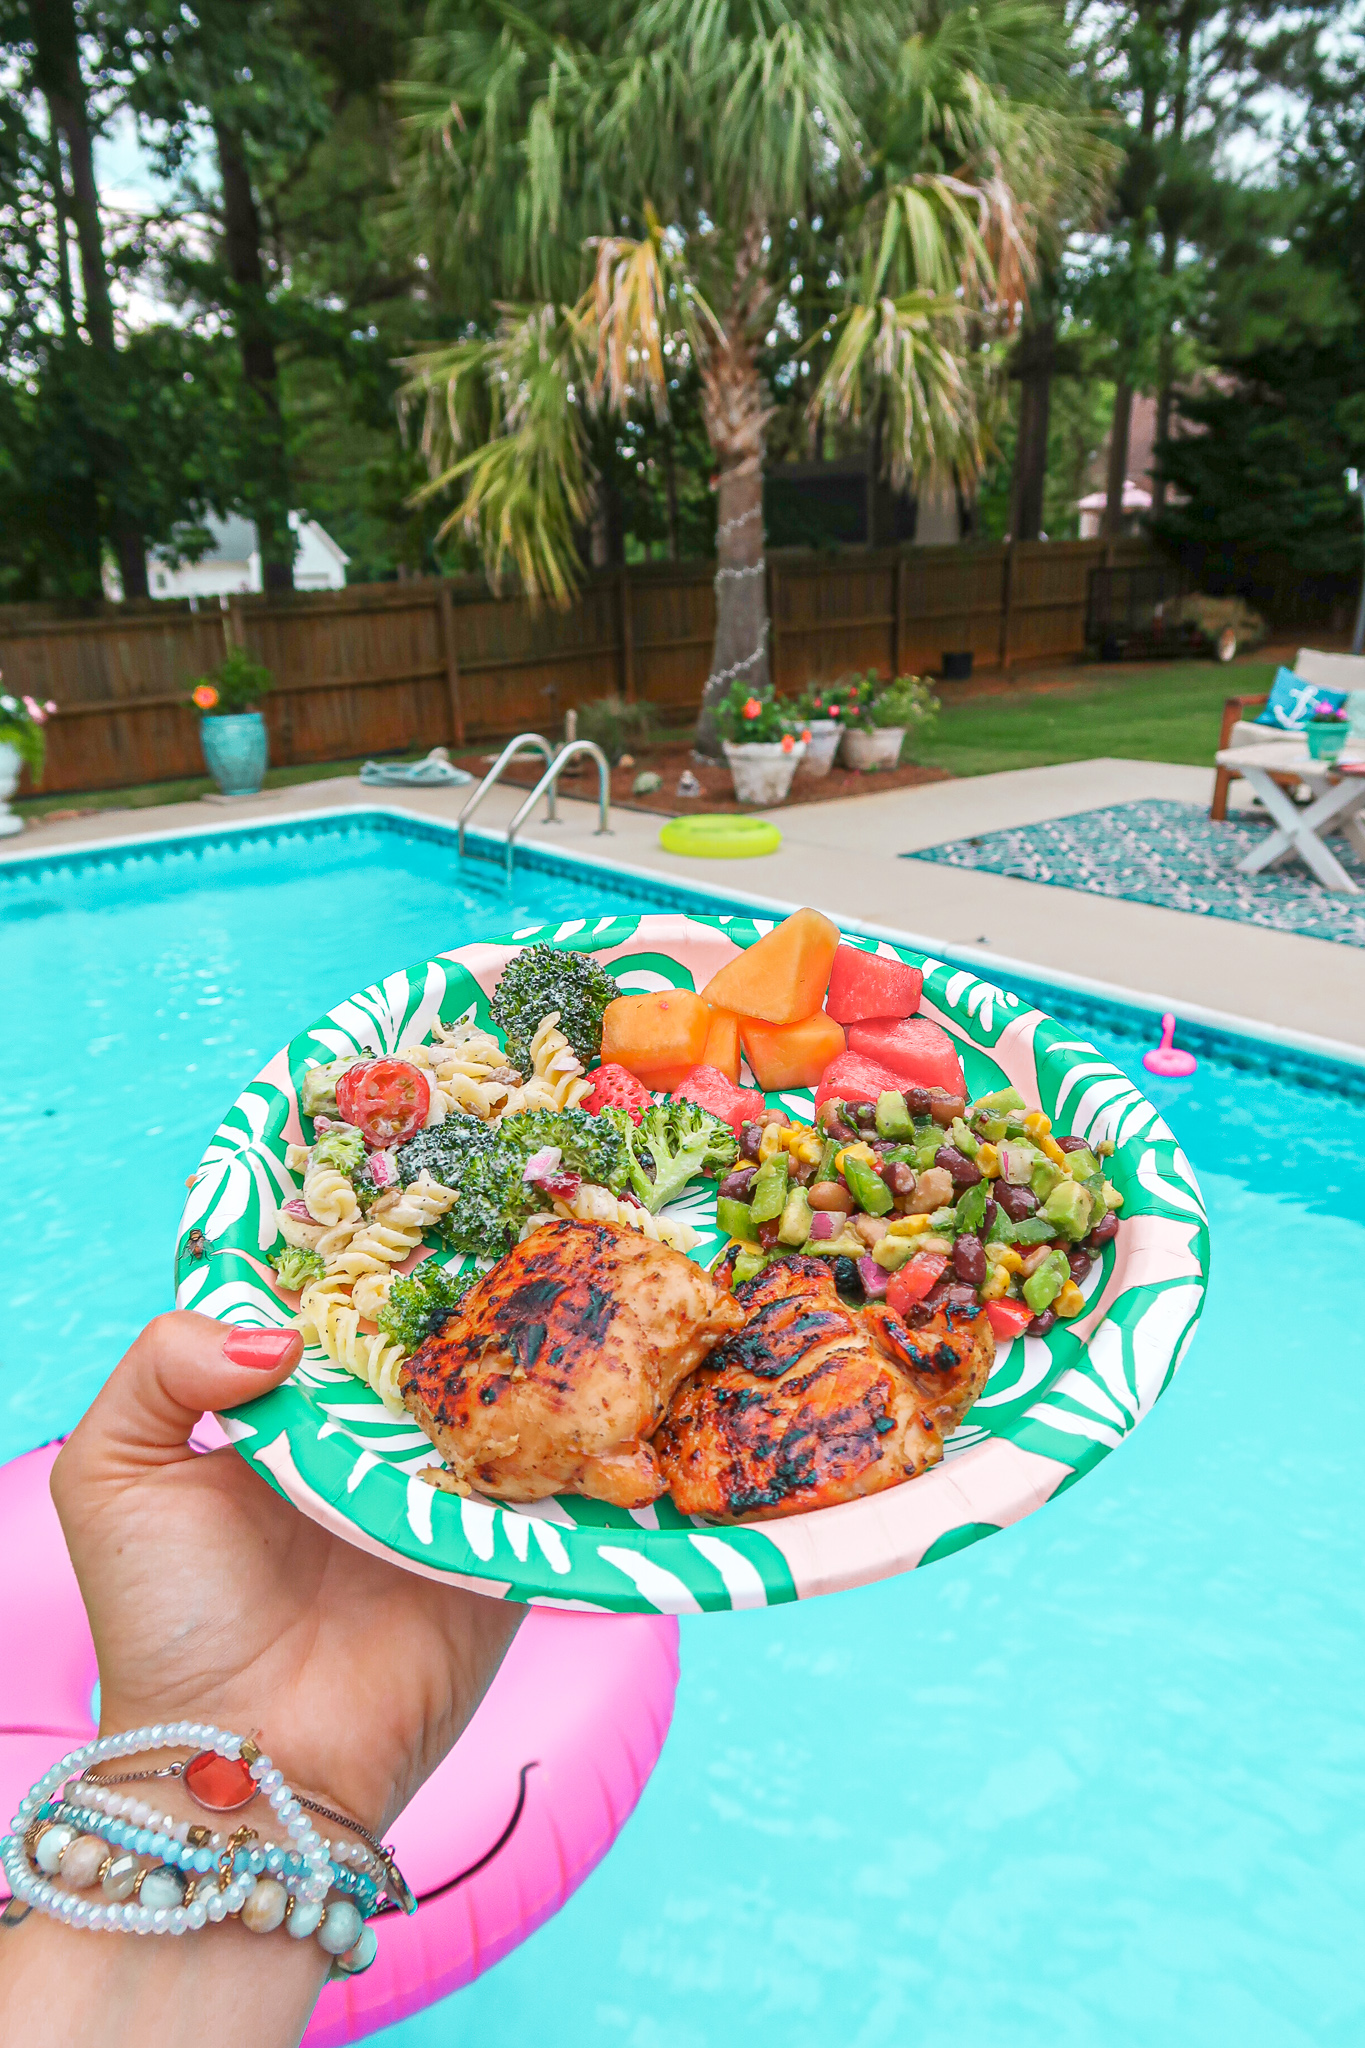 4th of July, party food, summer food, bbq, backyard, celebration, food, lifestyle, salads, salsa, dairy free, gluten free, delicious